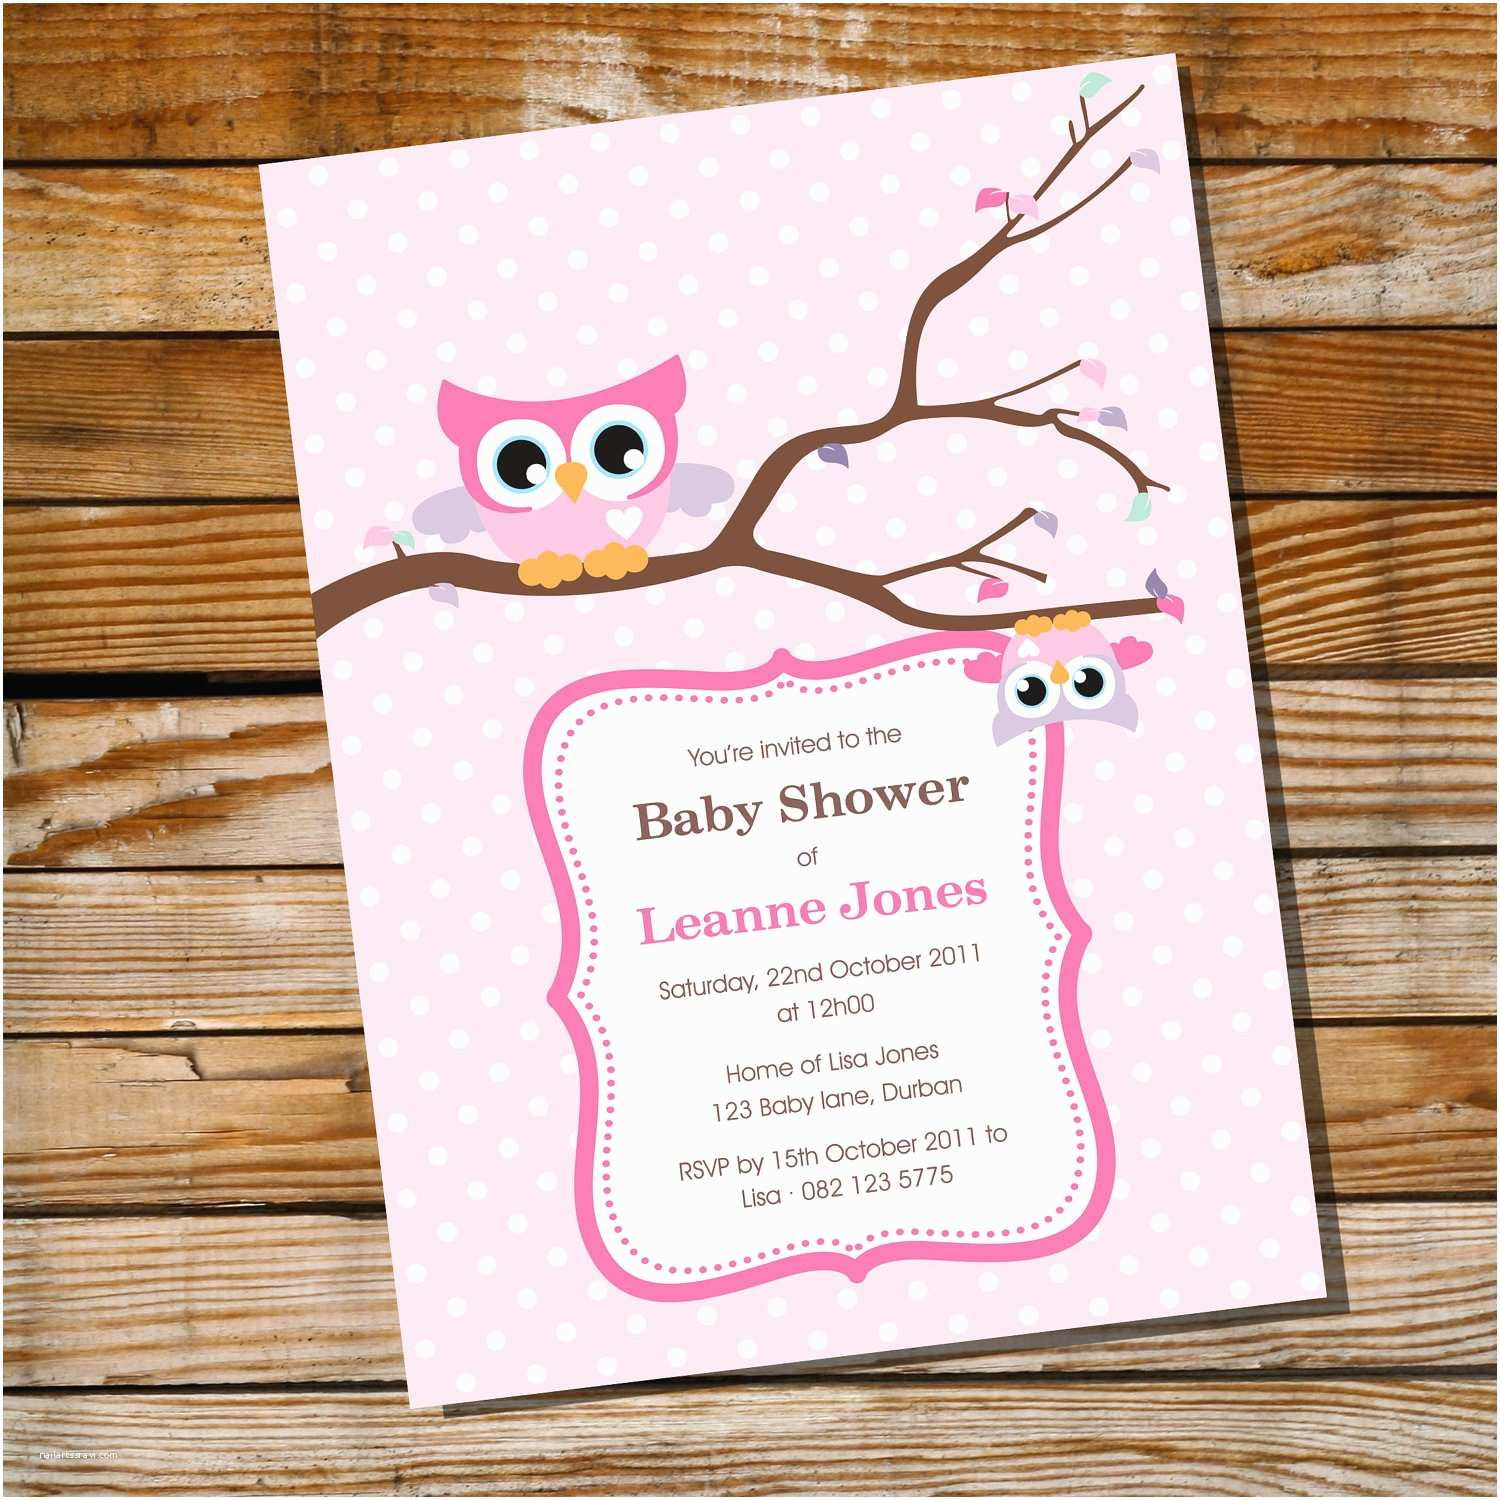 Owl Invitations for Baby Shower Cute Baby Owl Invitation for A Girl Baby Shower Instantly